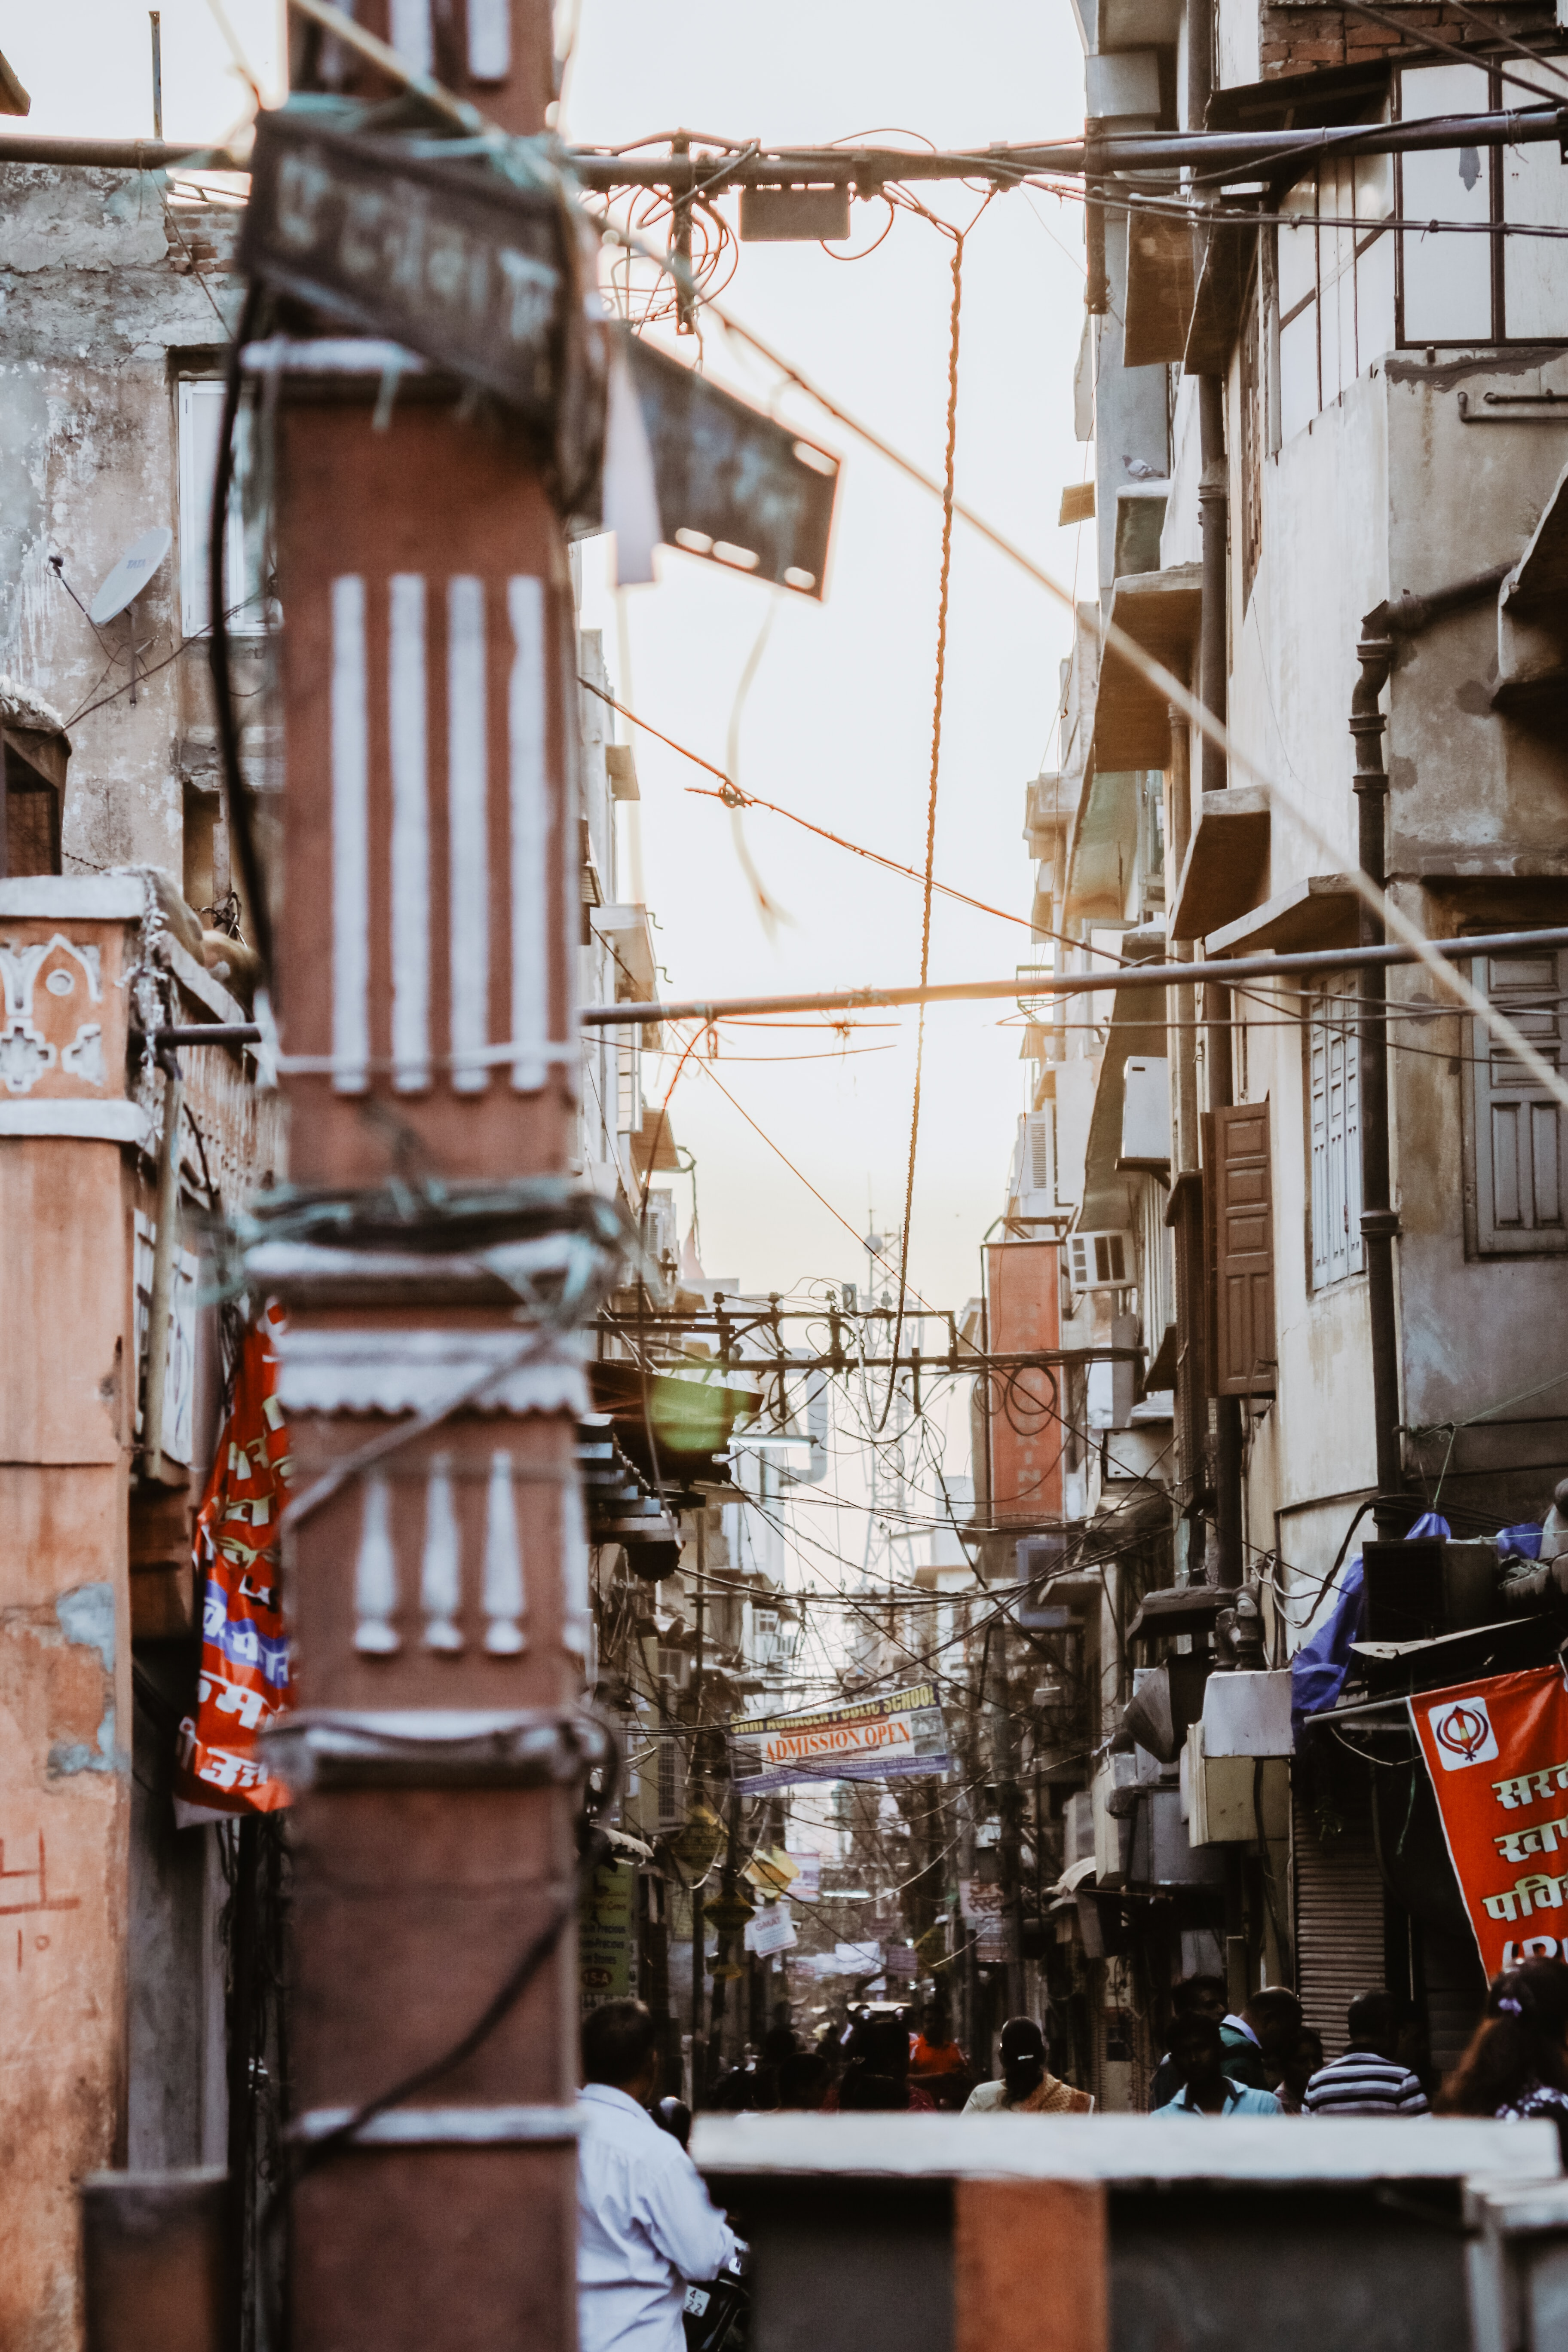 people in alley in middle of buildings under cables